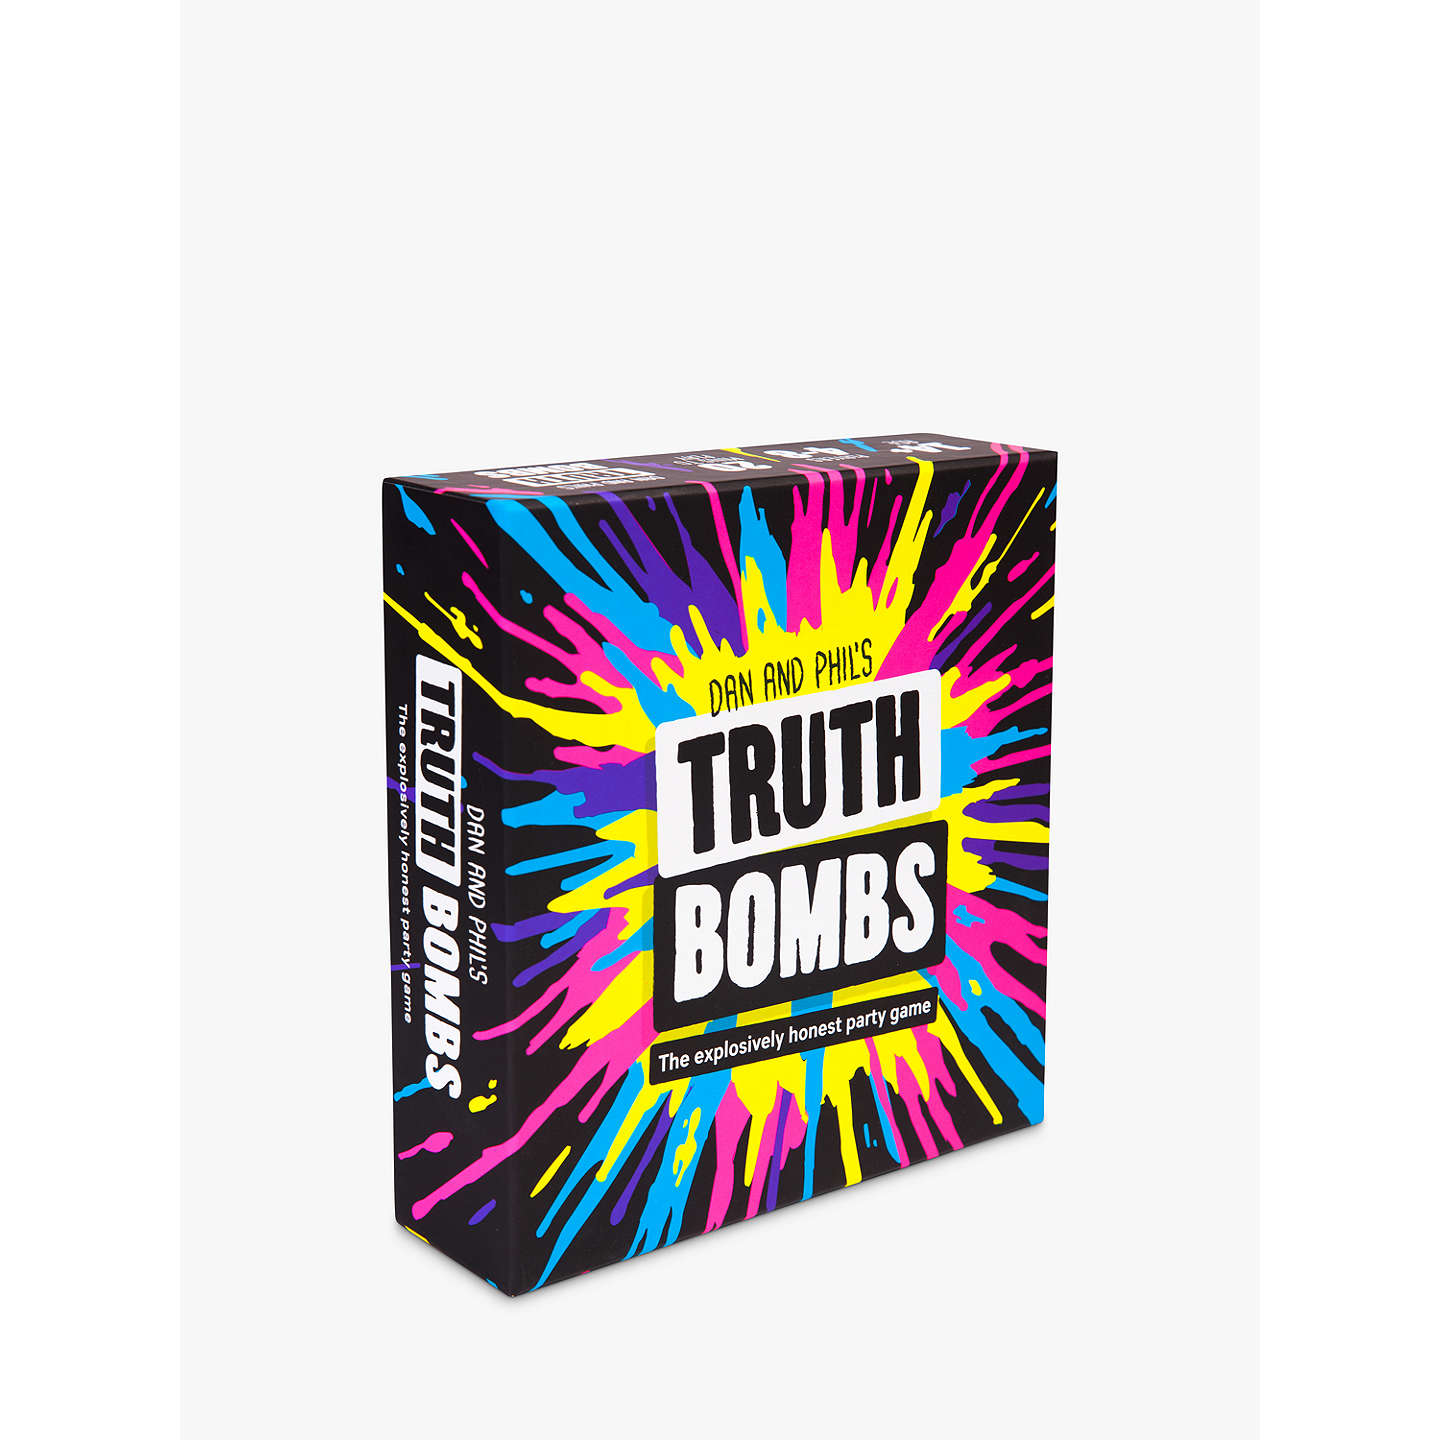 BuyBig Potato Dan And Phil's Truth Bombs Party Game Online at johnlewis.com